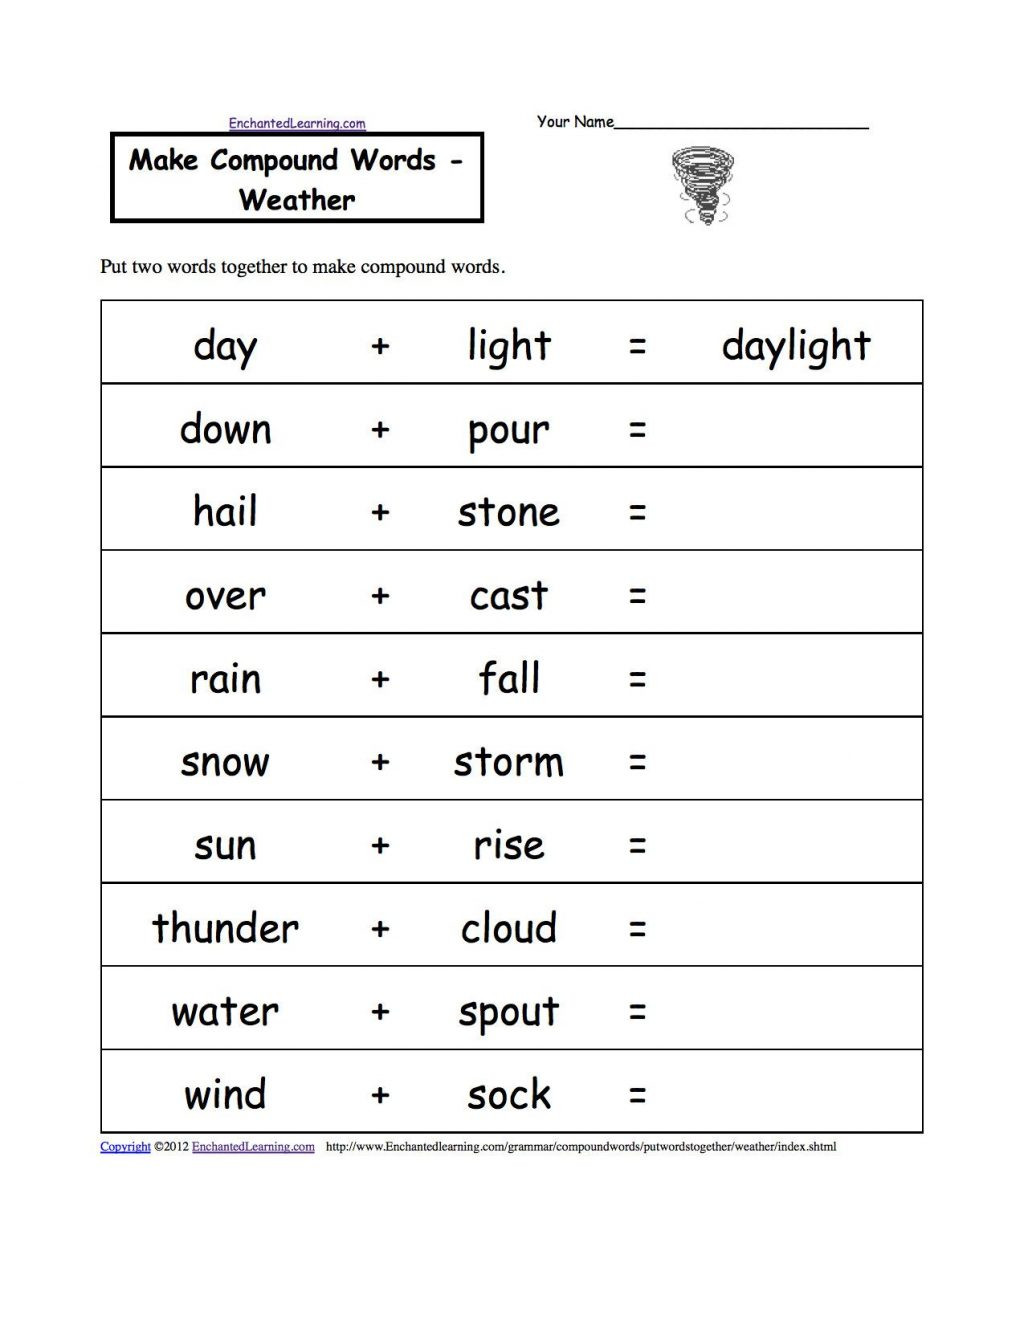 Spelling Worksheets 2nd Graders 2nd Grade Spelling Worksheets to You 2nd Grade Spelling